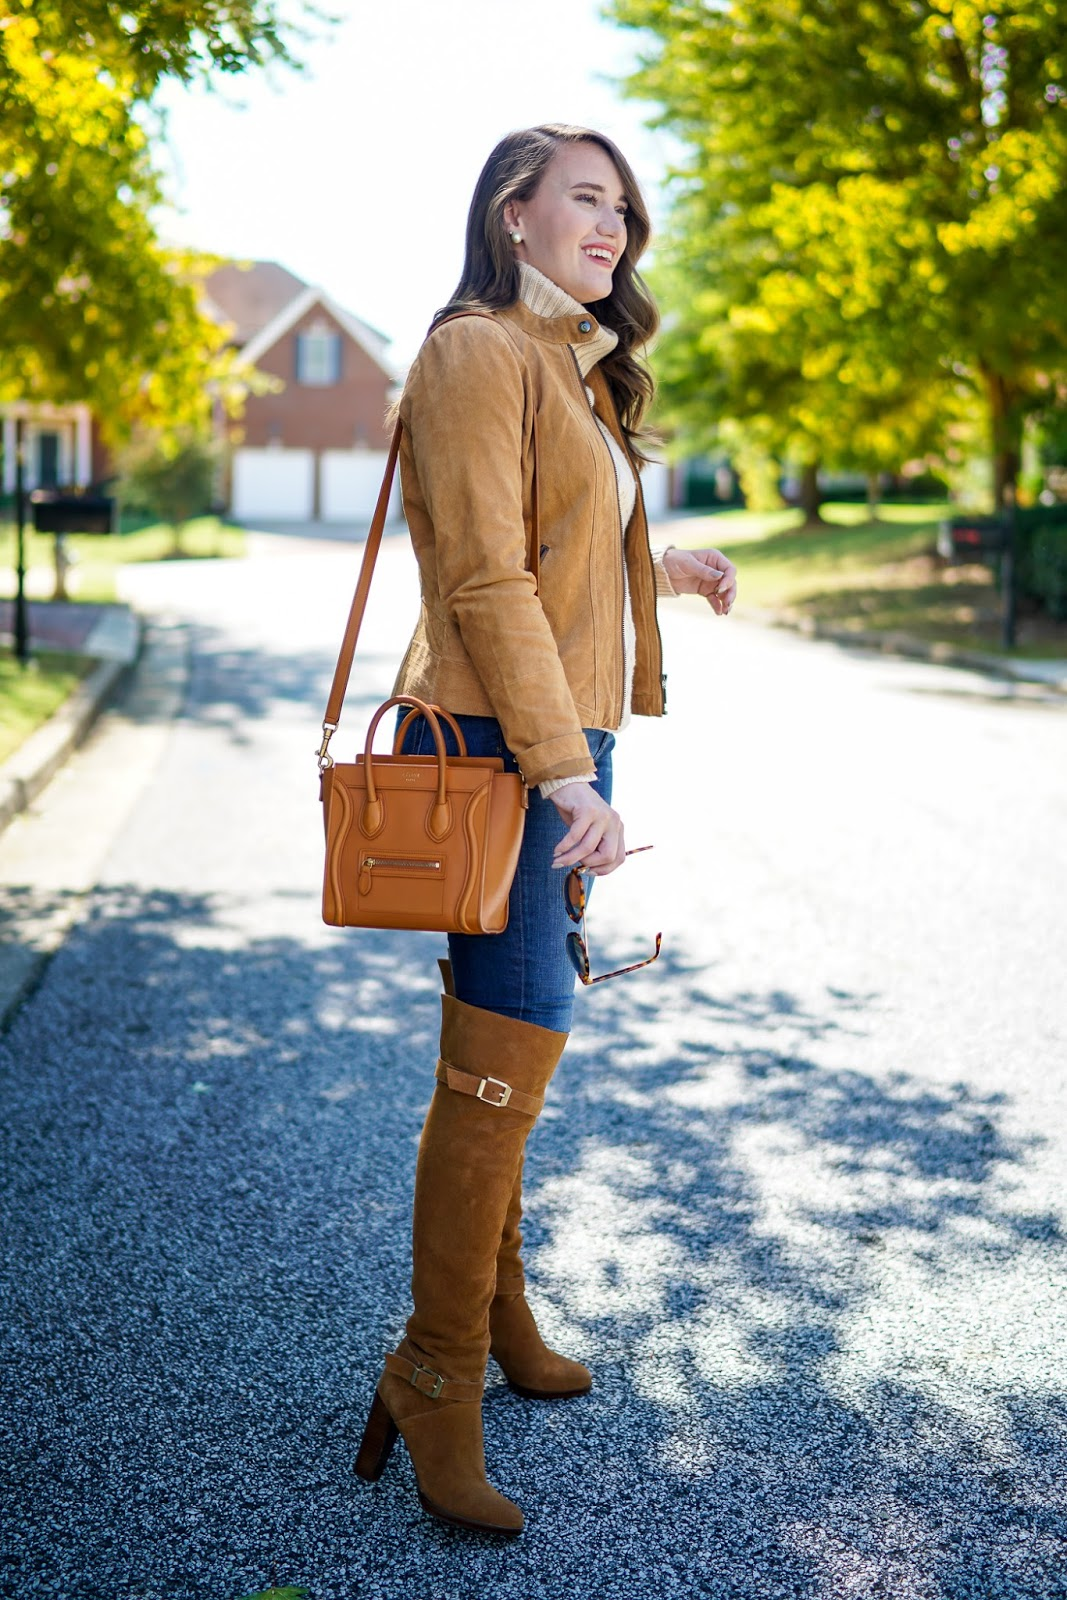 Suede Boots, Suede Jacket, Leather Handbags, Fall Outfit